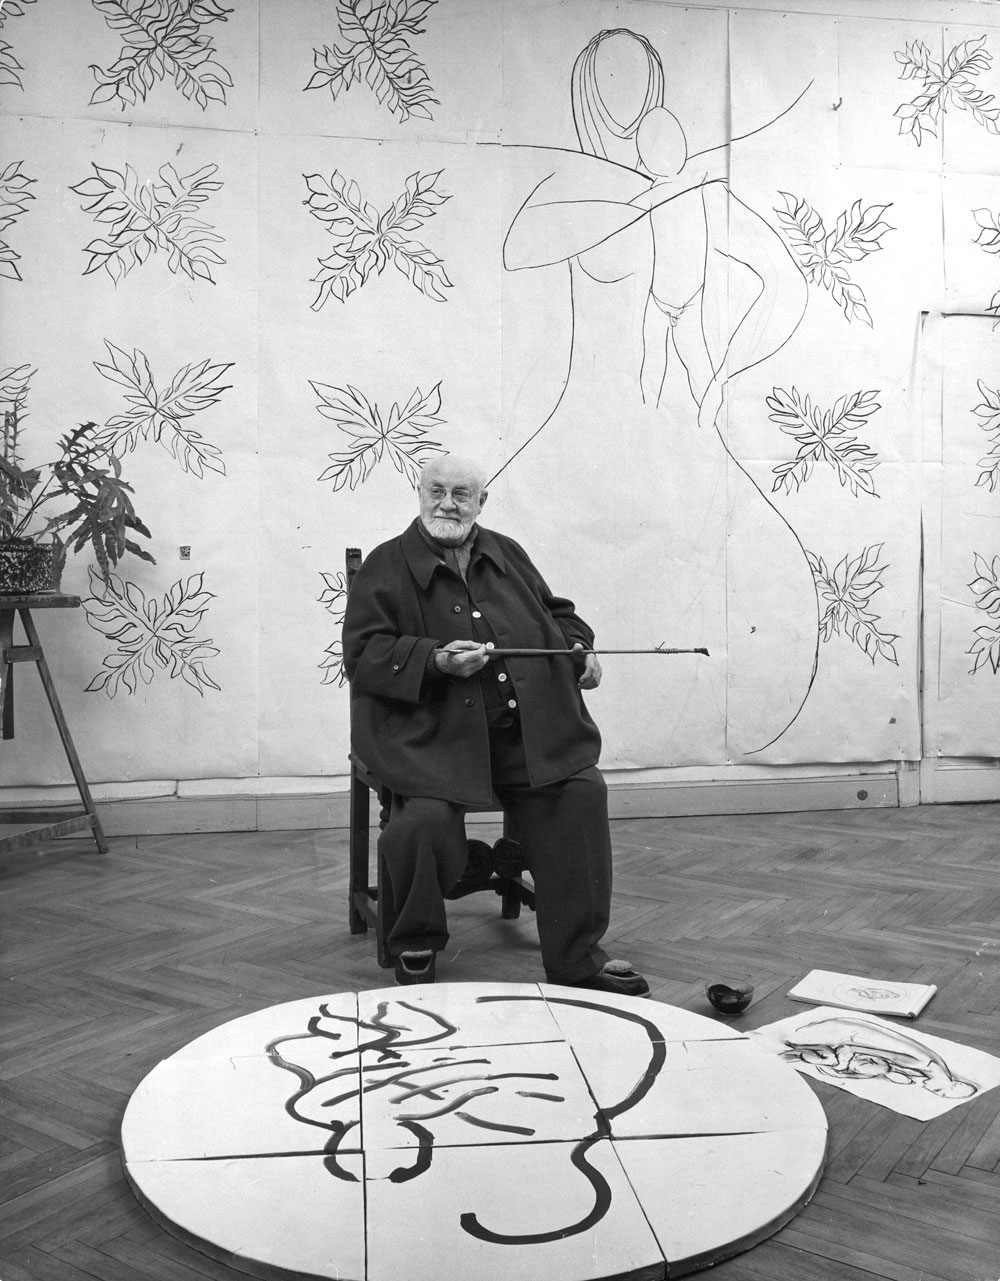 Henri Matisse was wheelchair bound in his later years, but that didn't stop him from creating. It was during this time that he designed his famous paper cut outs.